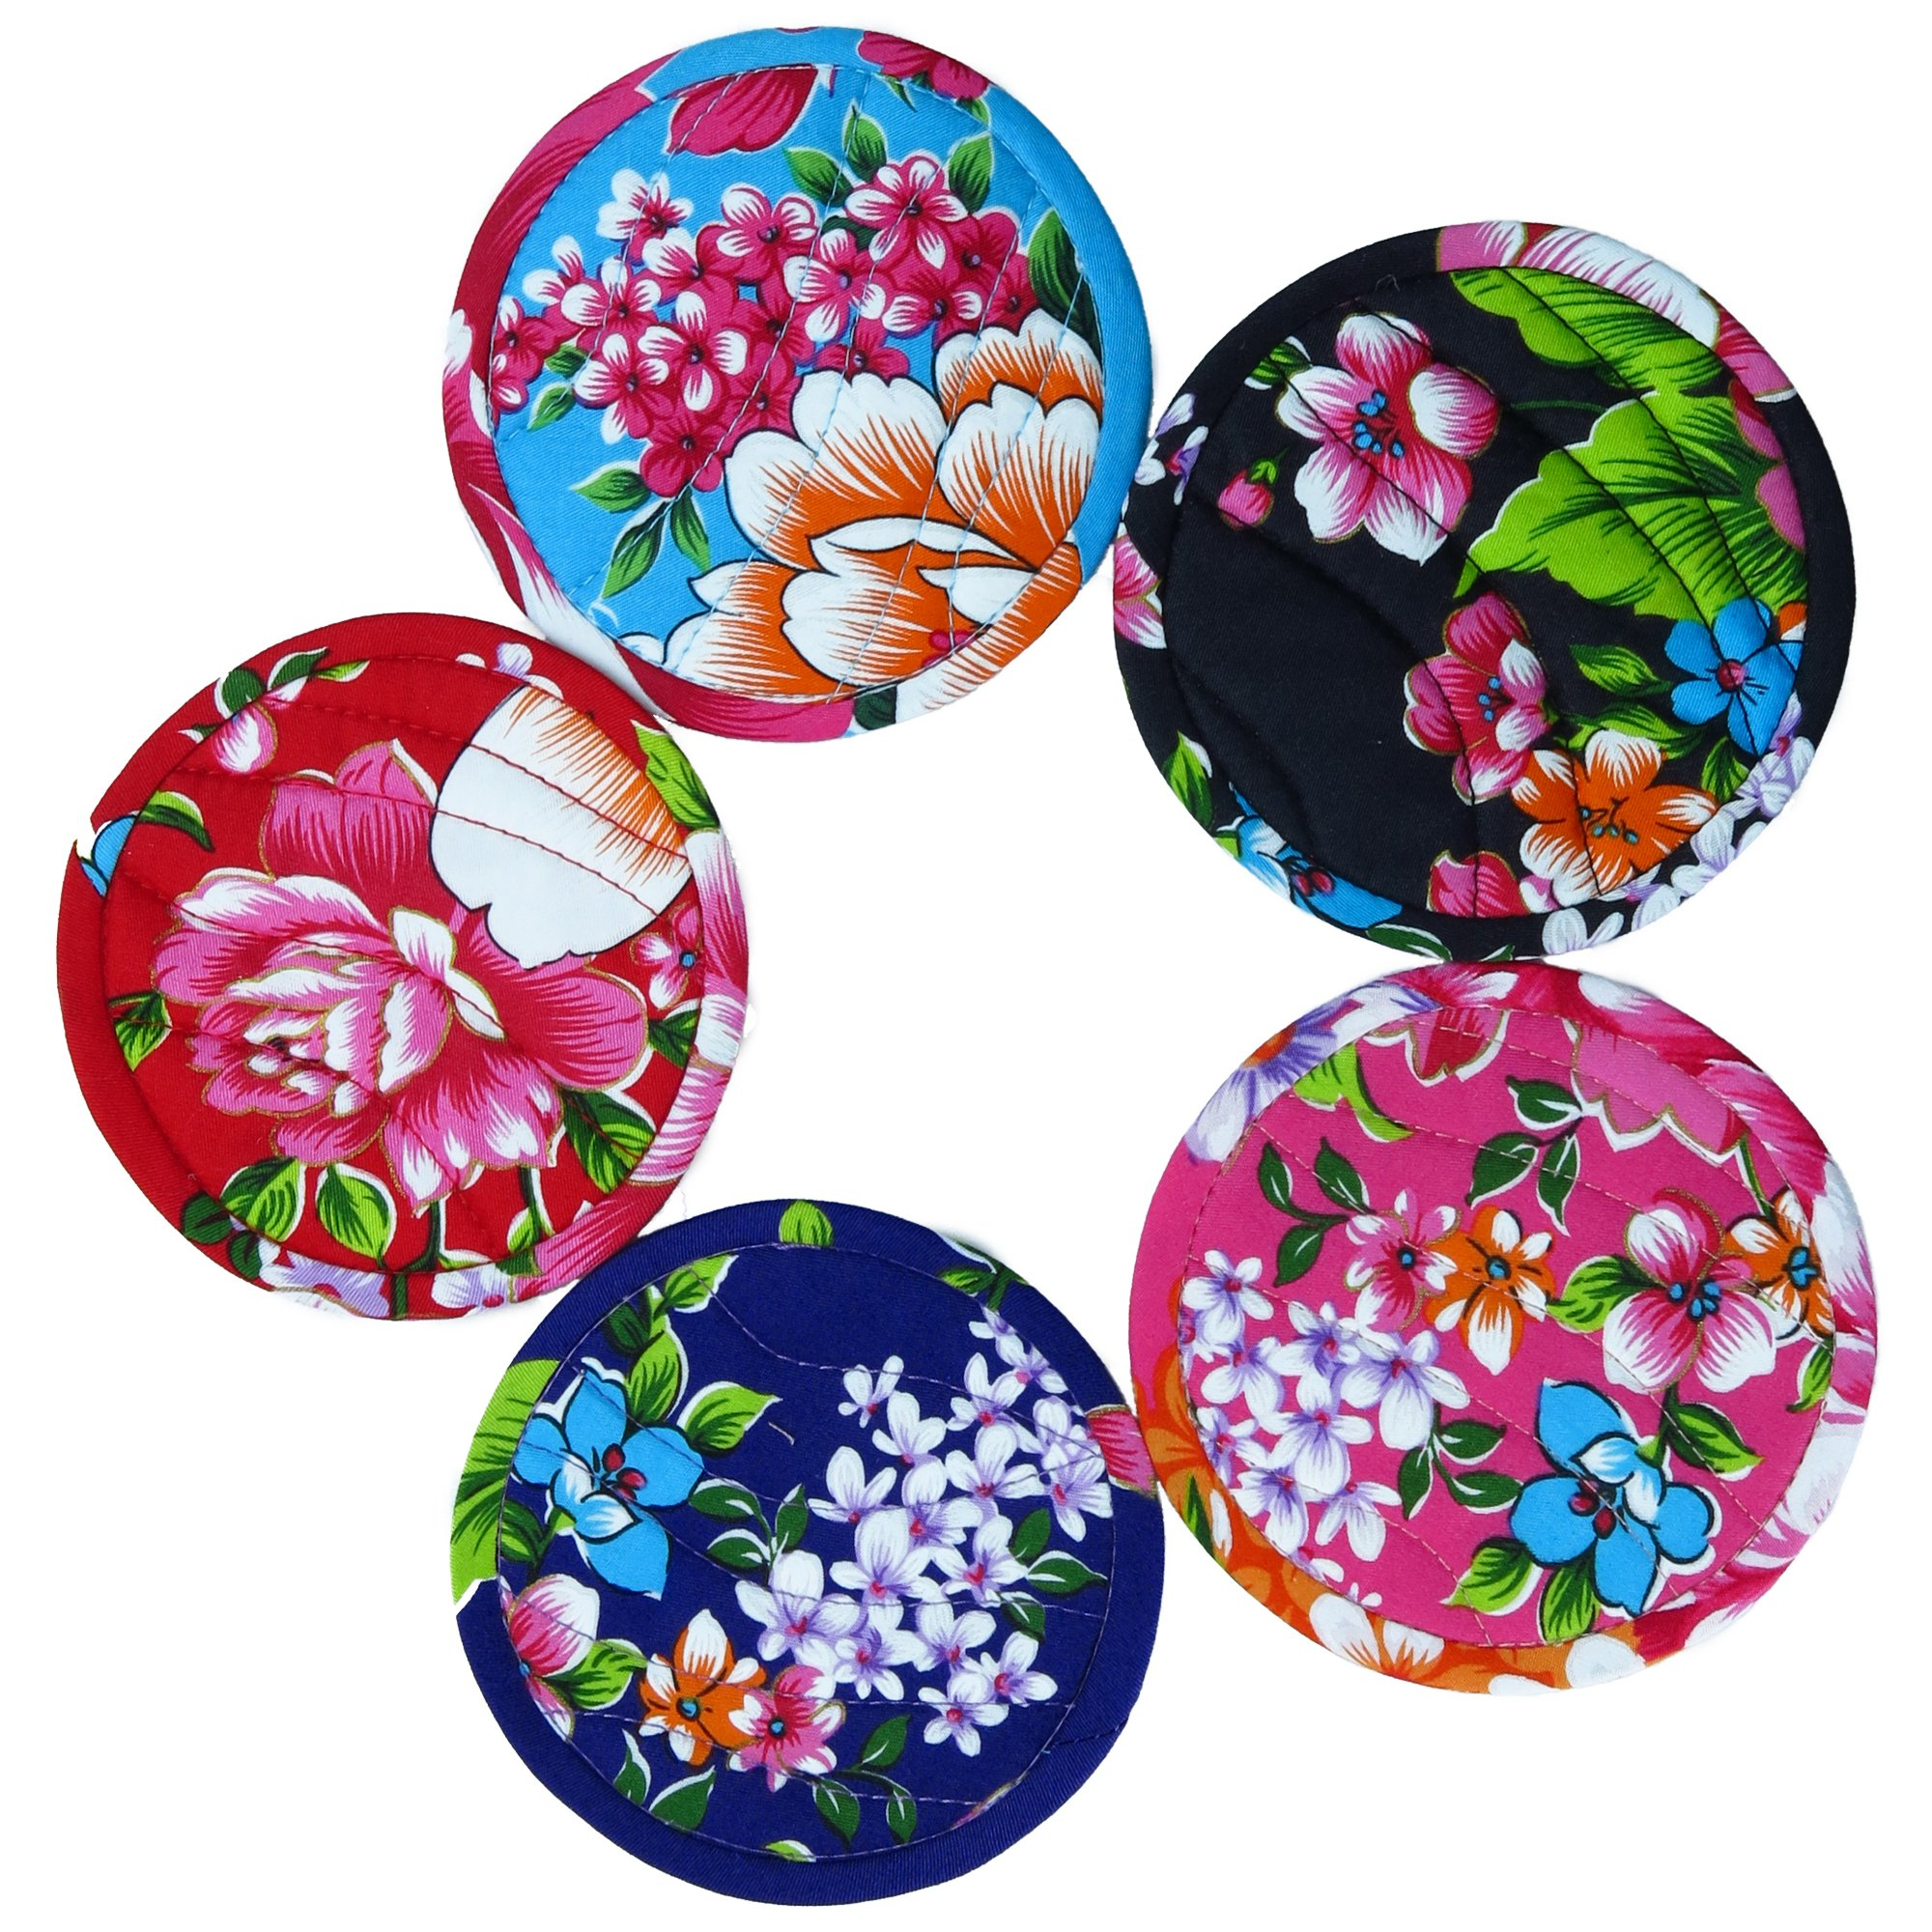 ✨ BARbee ✨ Retro Vintage Taiwanese Hakka Traditional Floral Pattern Design Handmade Water-Absorbent Wedding Gift Cup Coaster Set 5 pcs/Set (Made in Taiwan, 10.5x10.5cm, Multicolor)